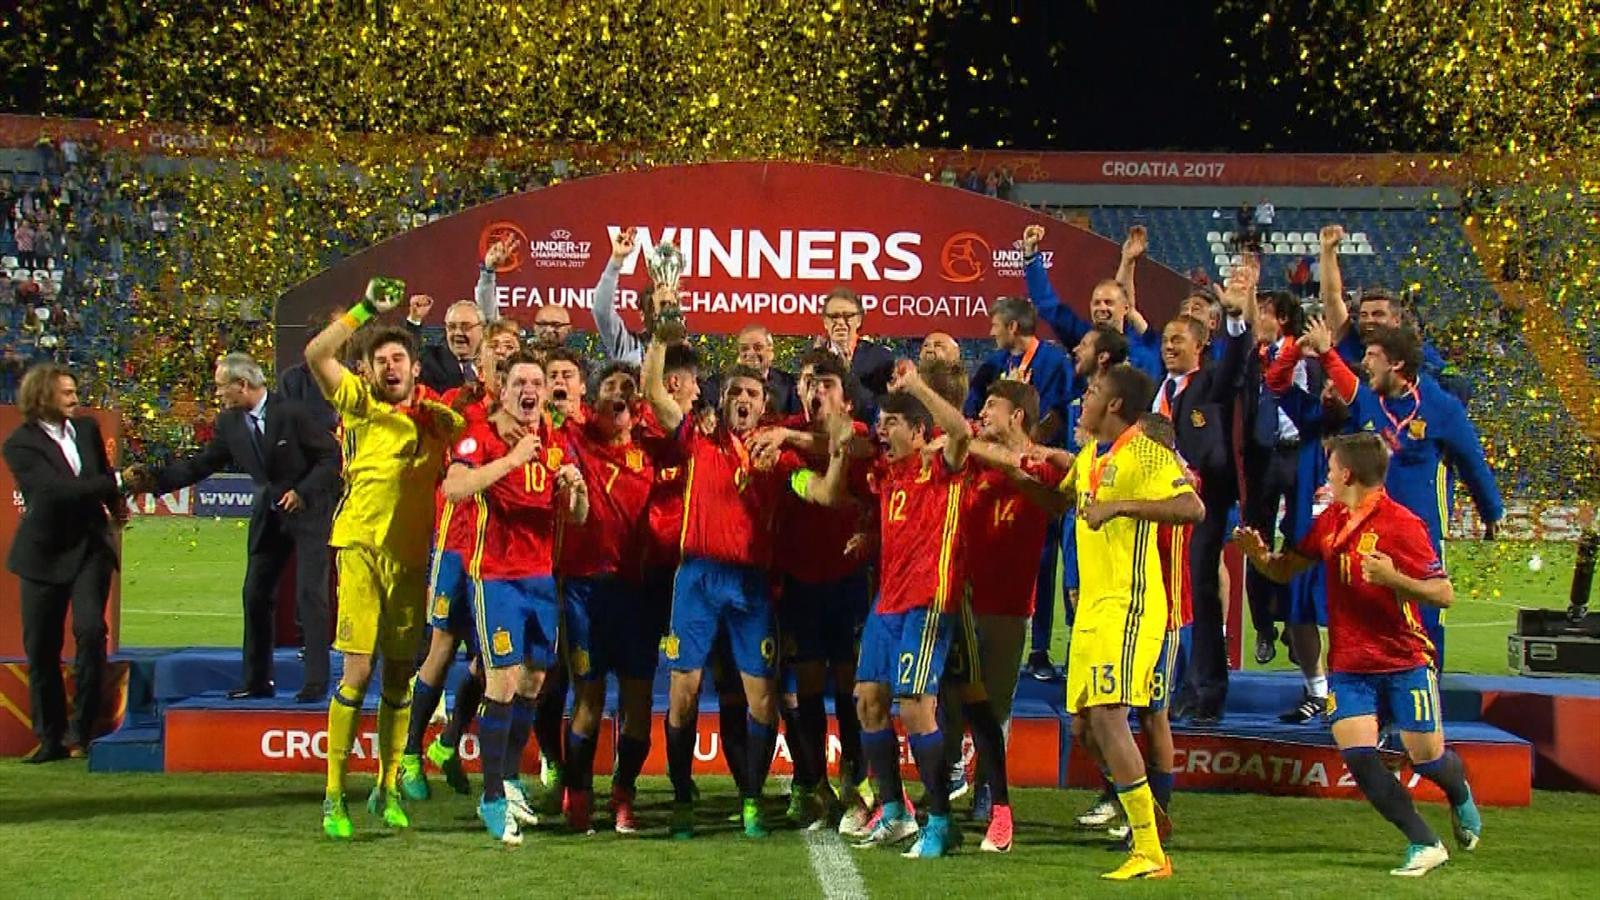 VIDEO - Highlights: Spain break England hearts in Euro U17 final - UEFA European Under-17 ...